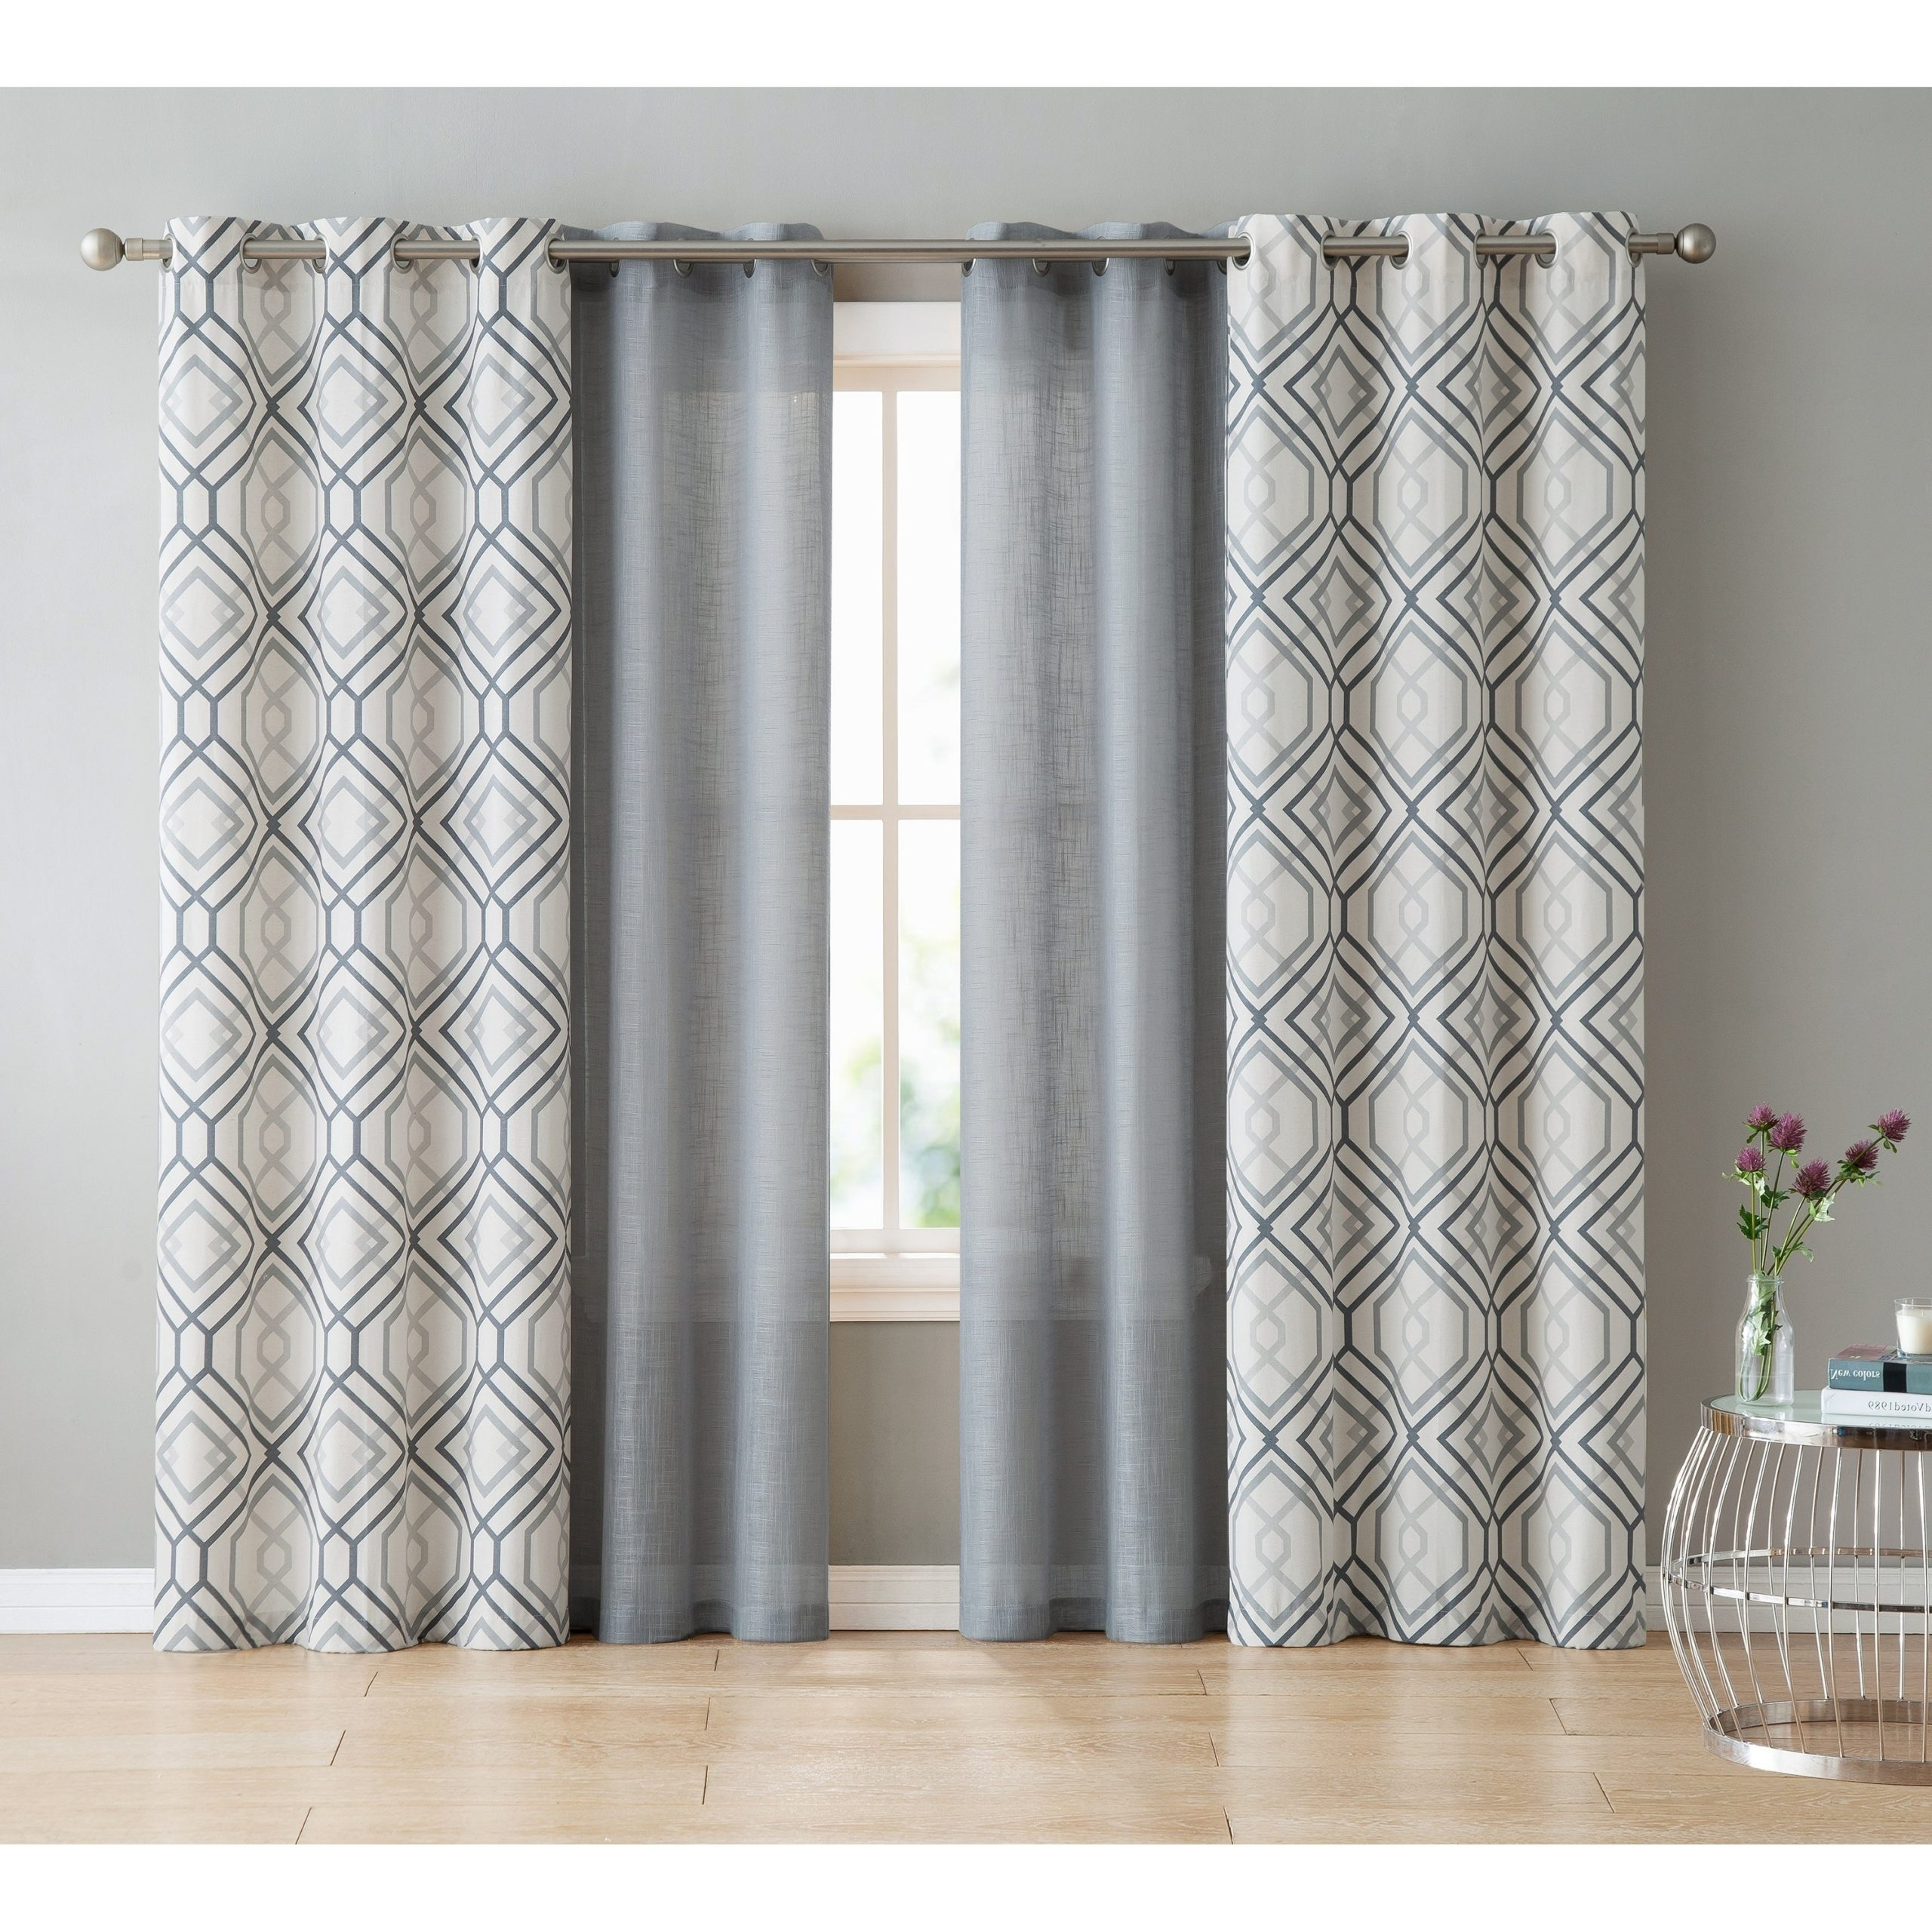 Most Popular Vcny Home Jackston 4 Piece Curtain Panel Set For Essentials Almaden Fretwork Printed Grommet Top Curtain Panel Pairs (Gallery 12 of 20)